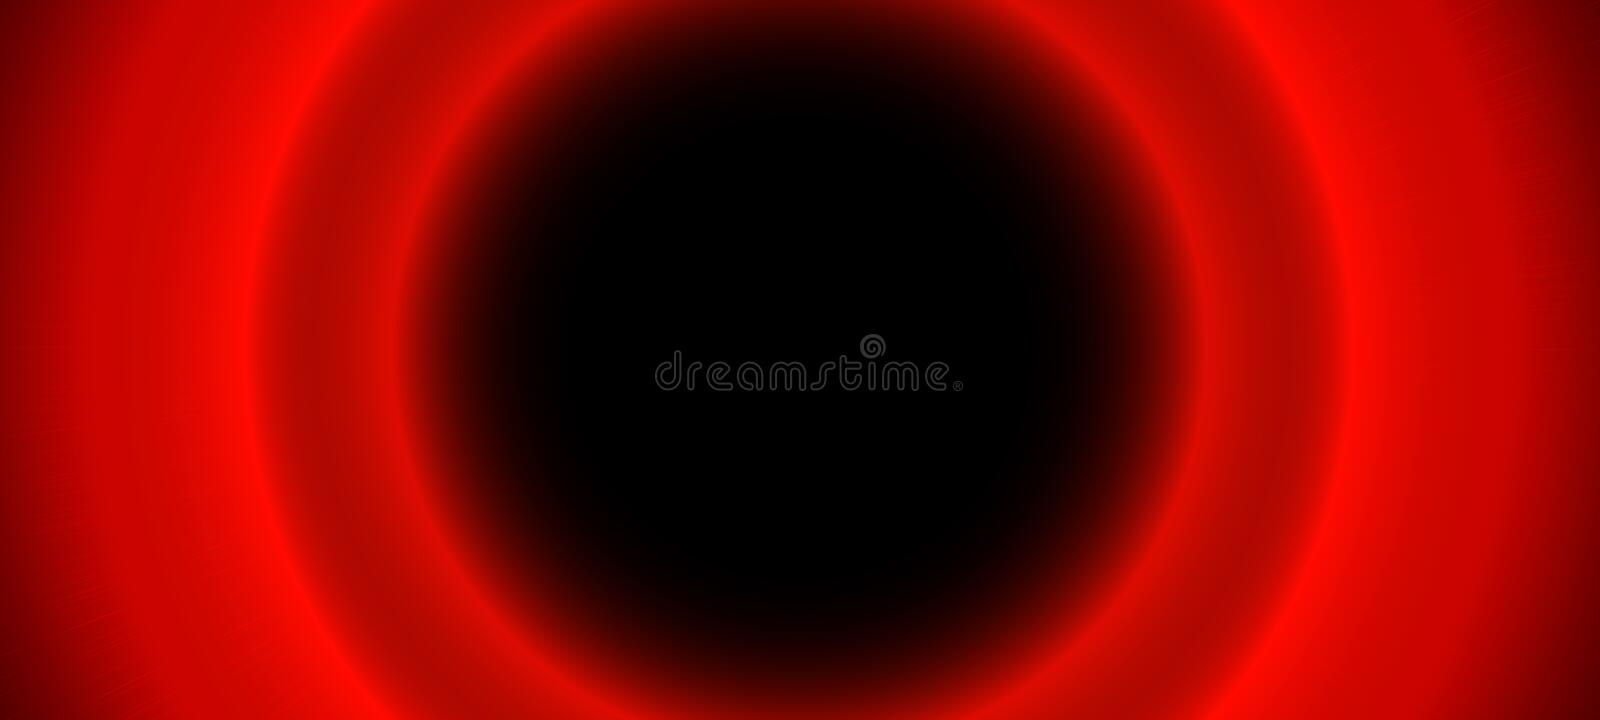 Bright red blurred glowing circles on black background. Abstract illustration with shiny lights. Blur neon round objects. Copy spa vector illustration